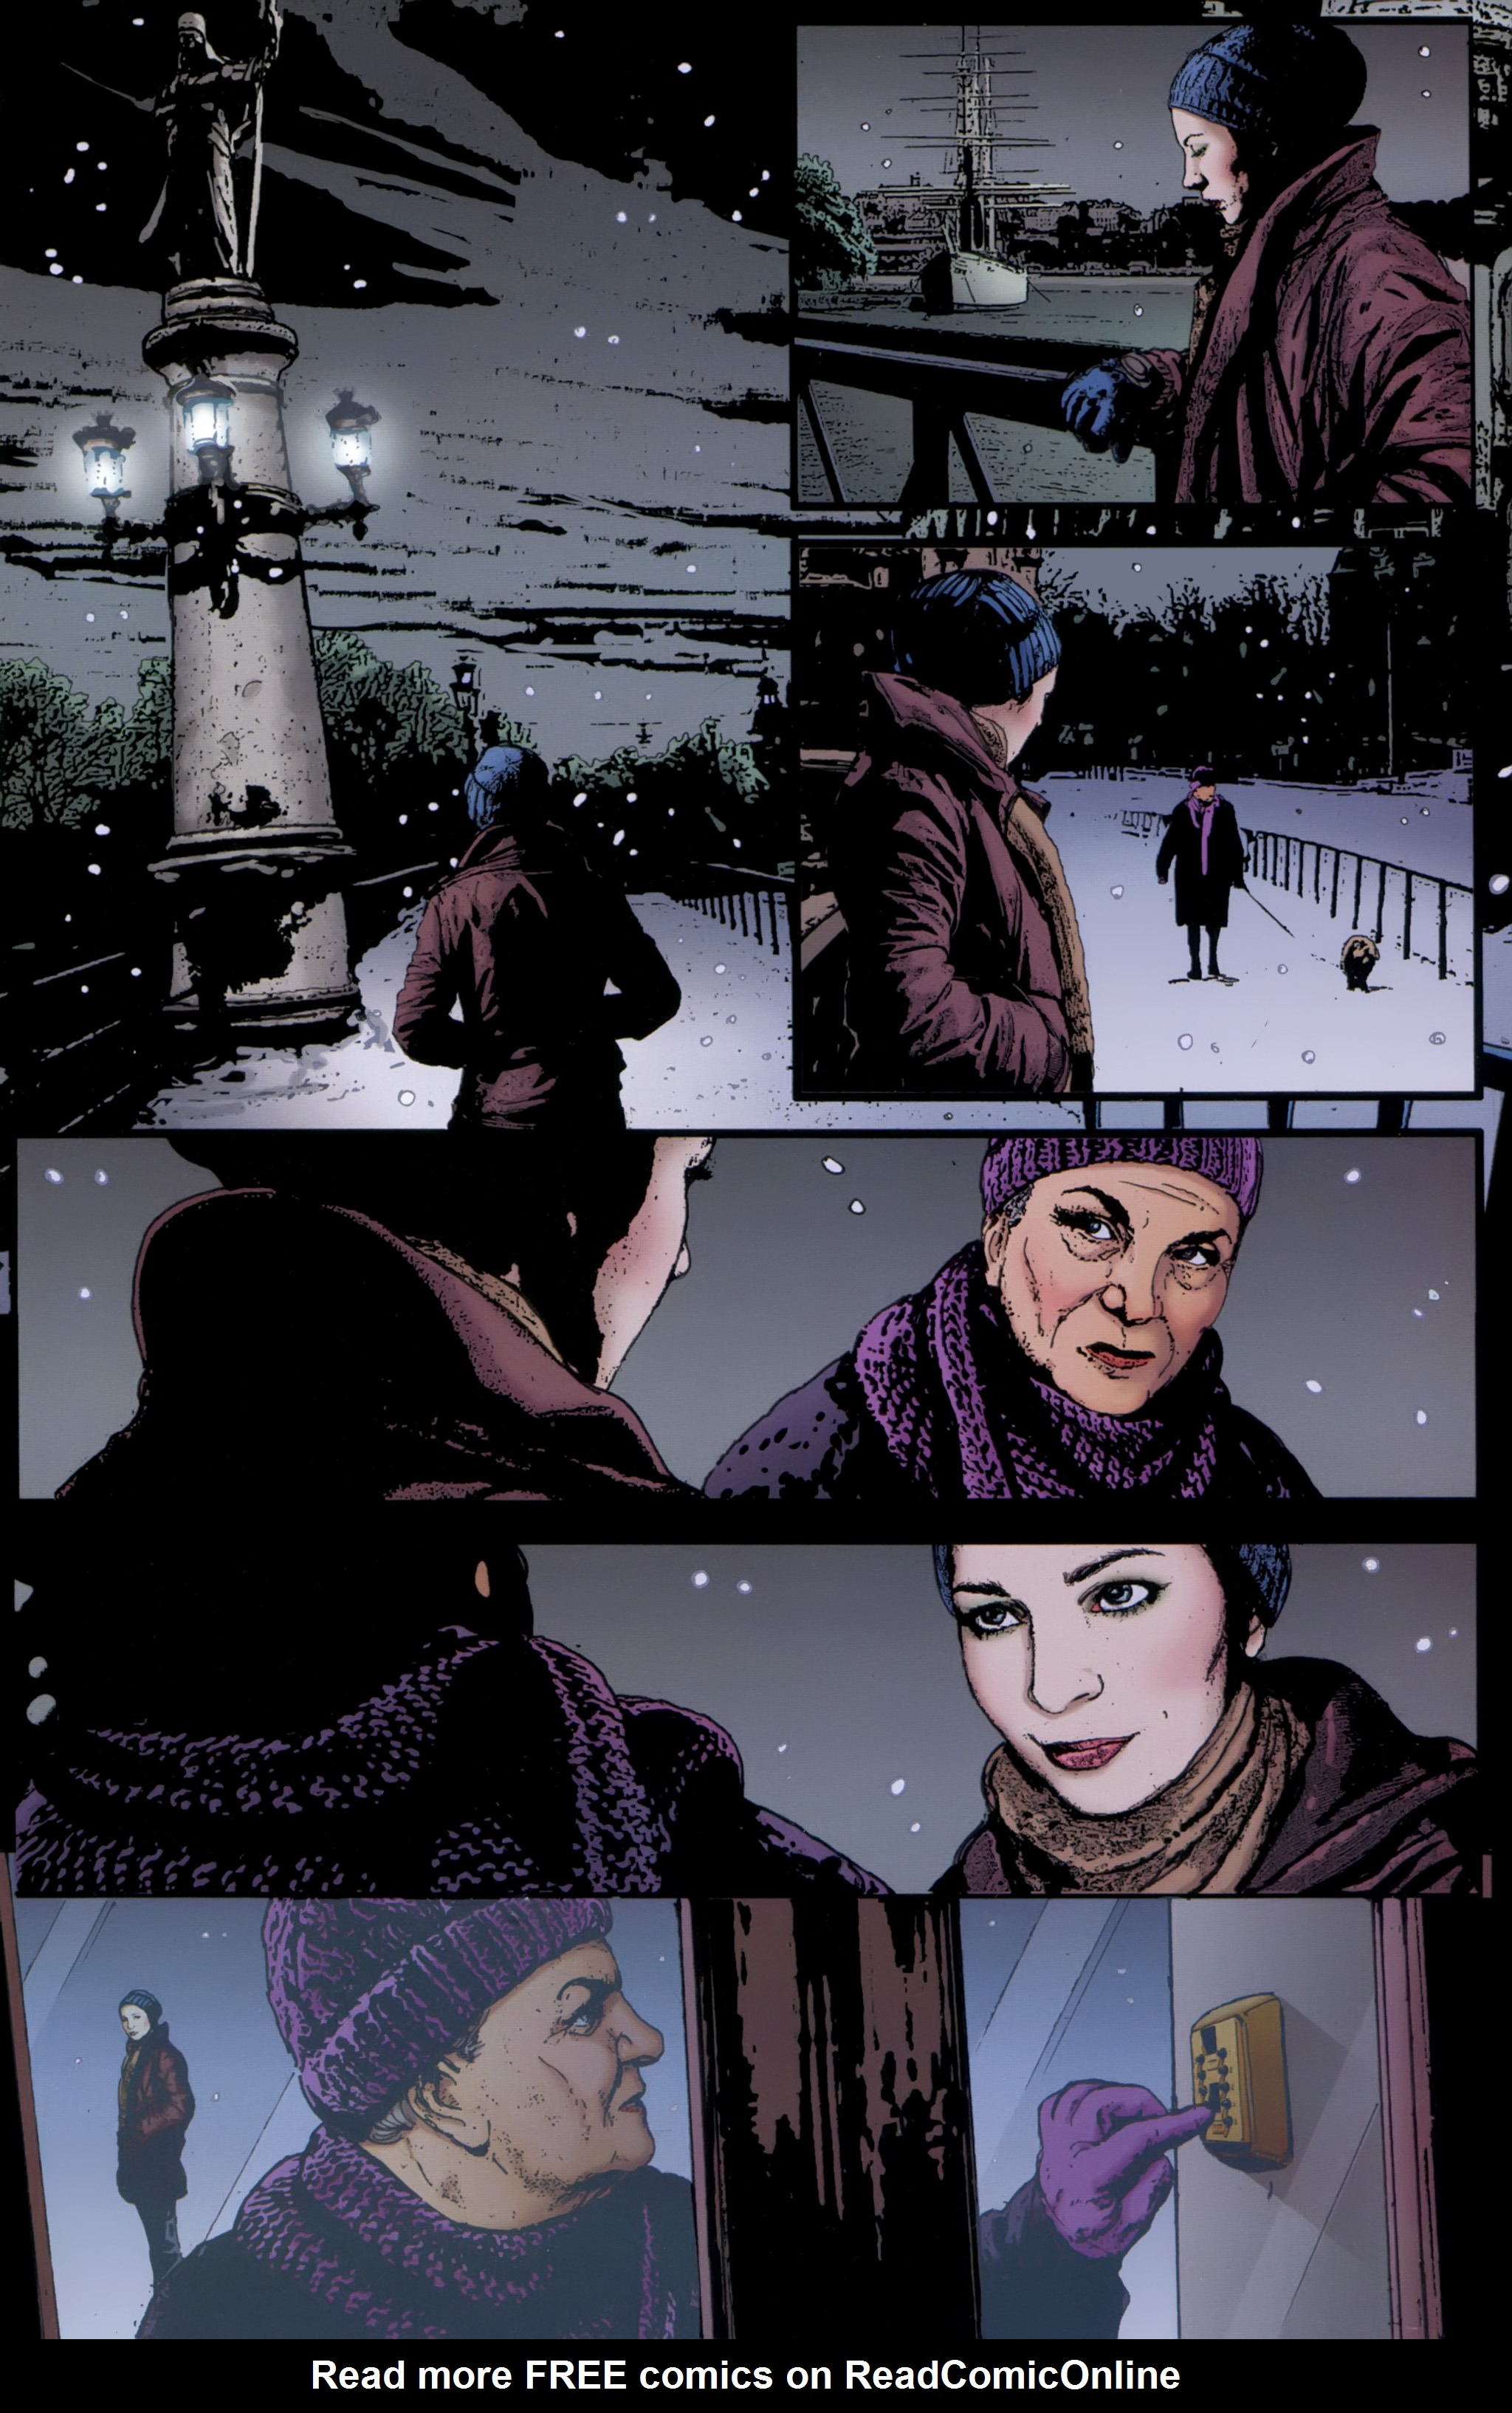 Read online The Girl With the Dragon Tattoo comic -  Issue # TPB 1 - 44